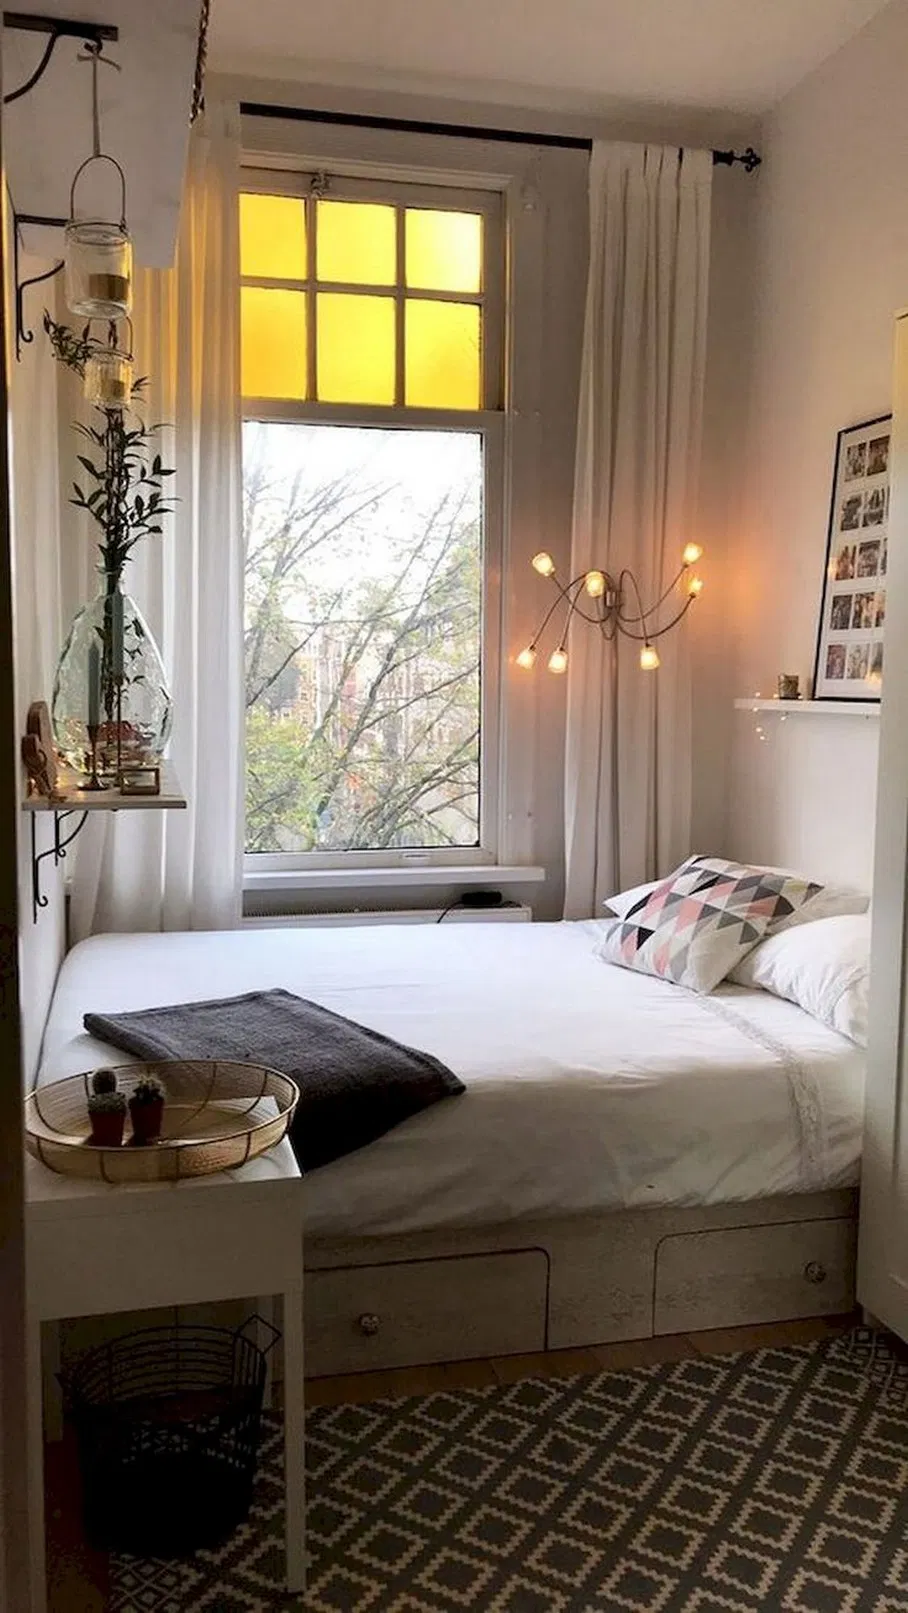 54 Brilliant Space Saving Ideas For Small Bedroom 36 Designirulz Com In 2020 Small Apartment Bedrooms Luxurious Bedrooms Tiny Bedroom Design